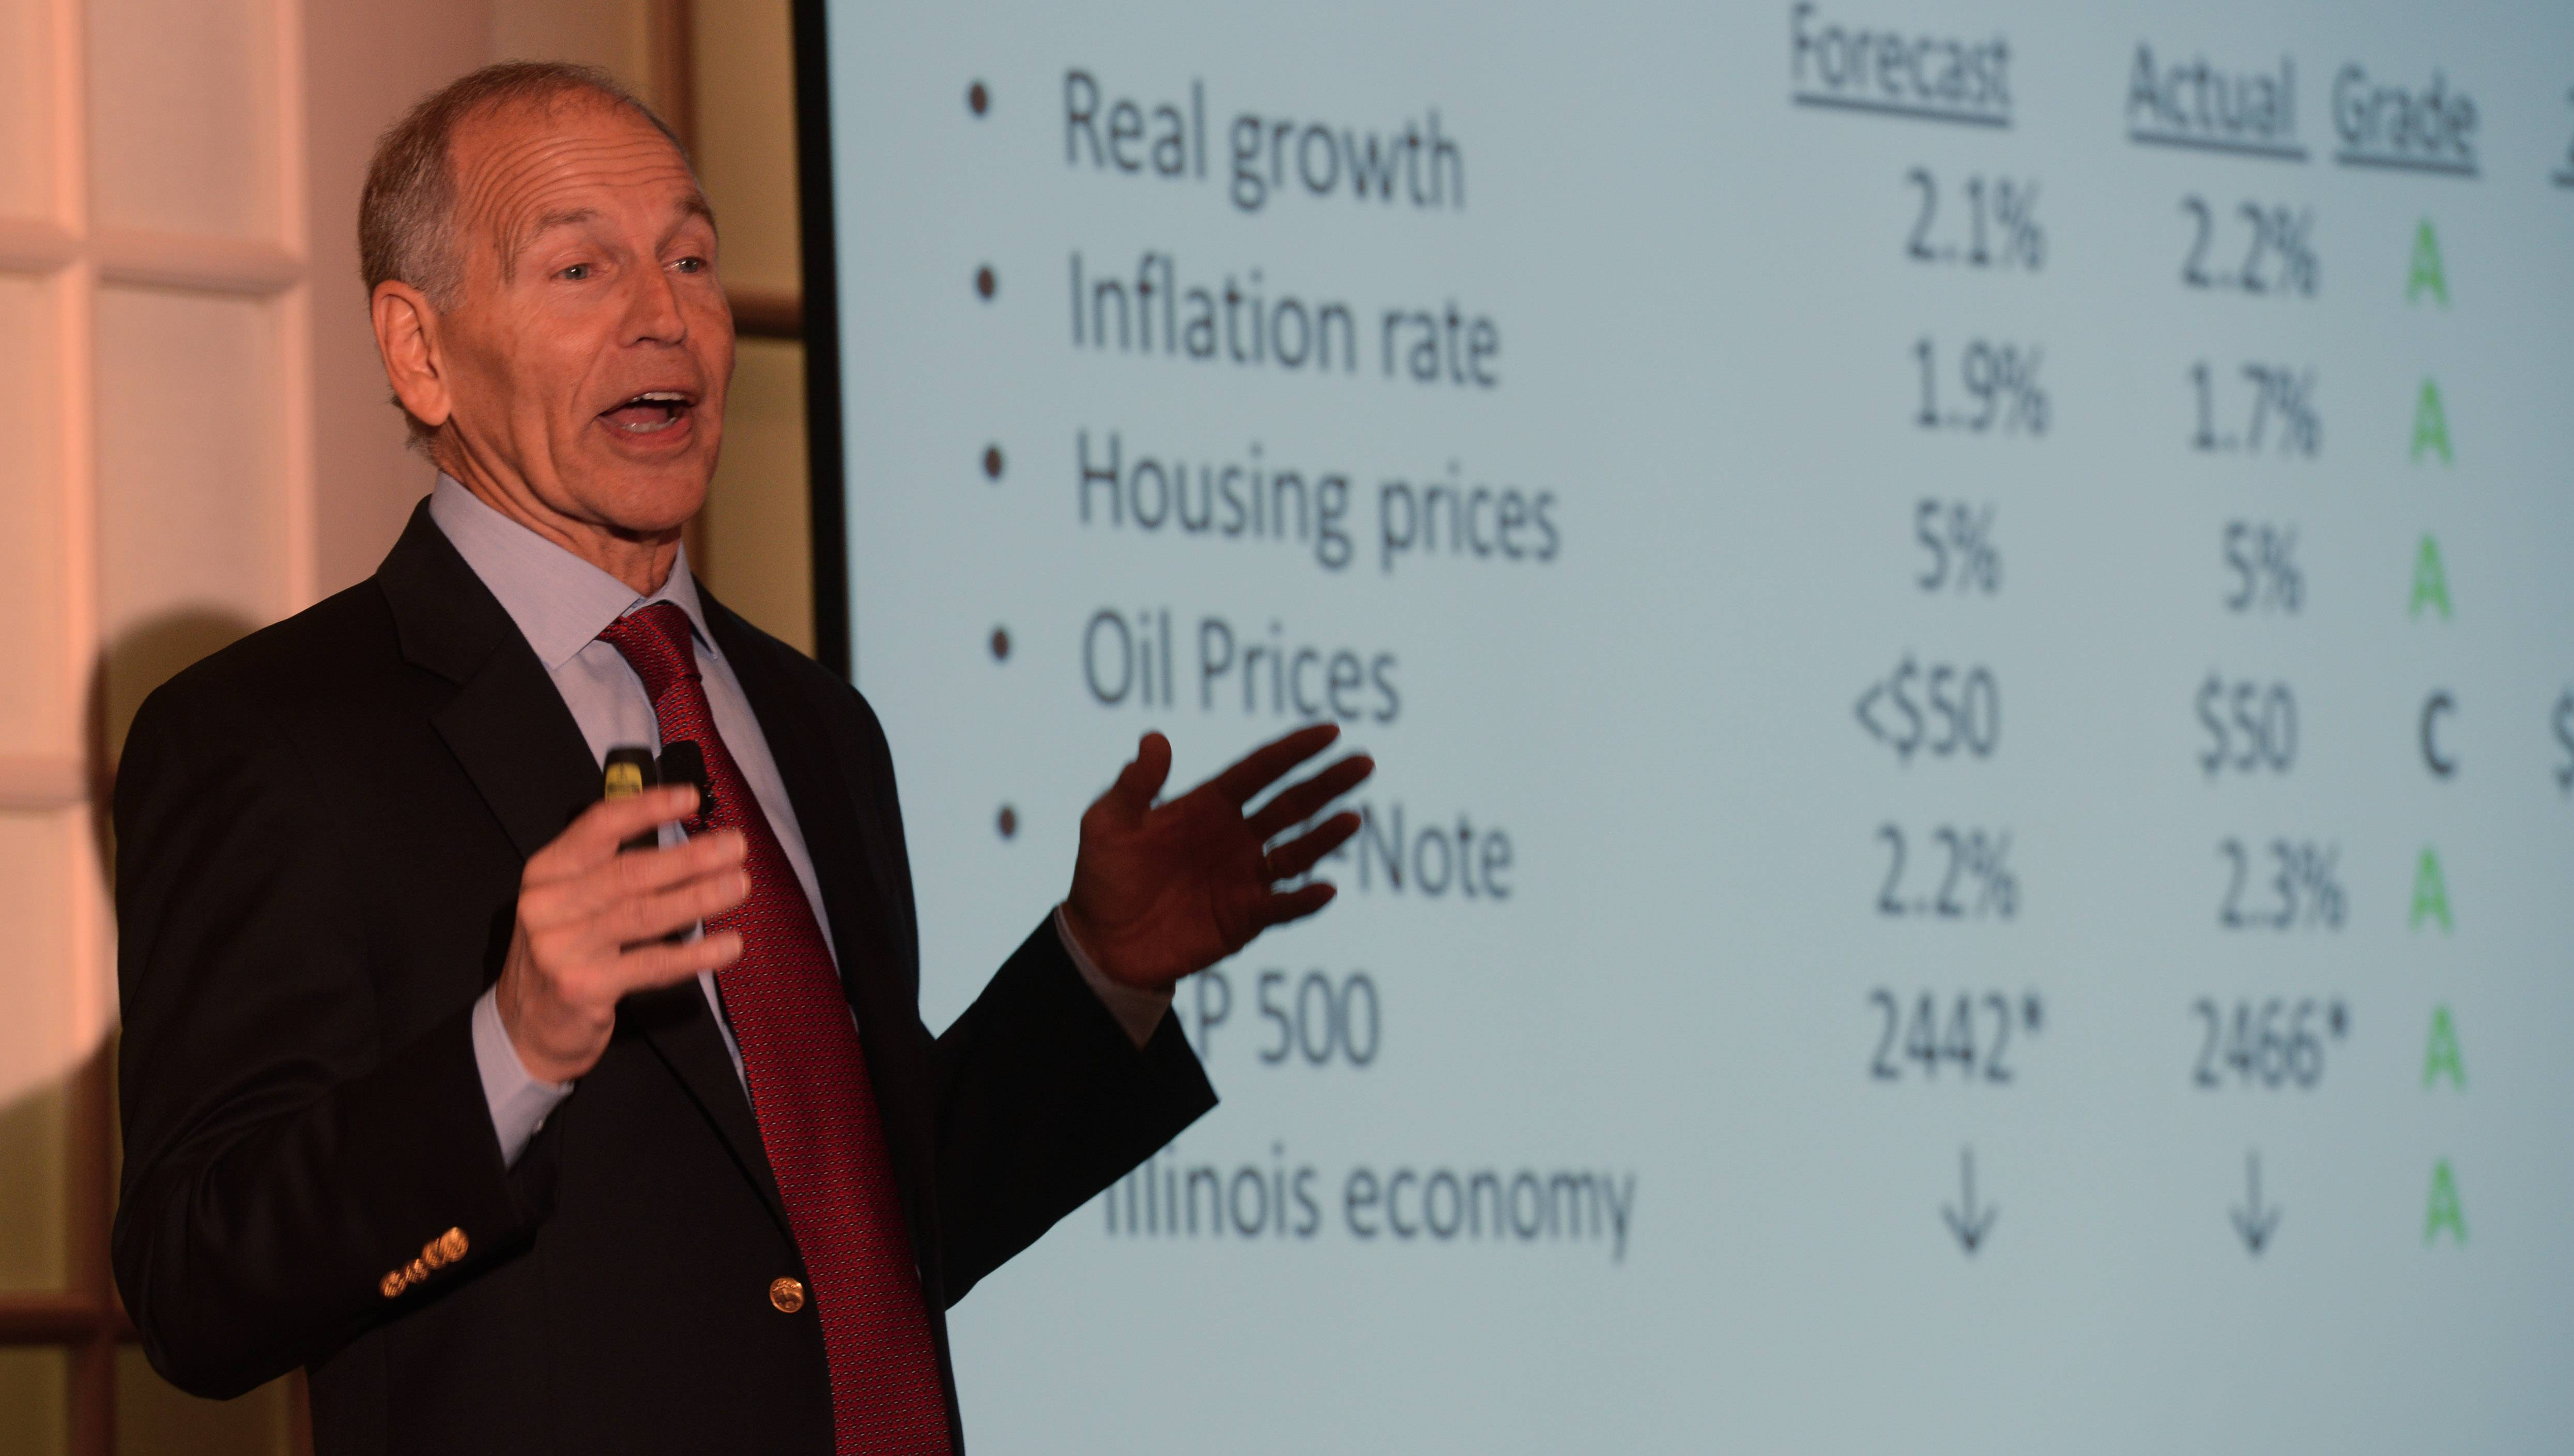 Robert Genetski speaks at the 14th Annual Economic Breakfast hosted by Cornerstone National Bank & Trust Company.